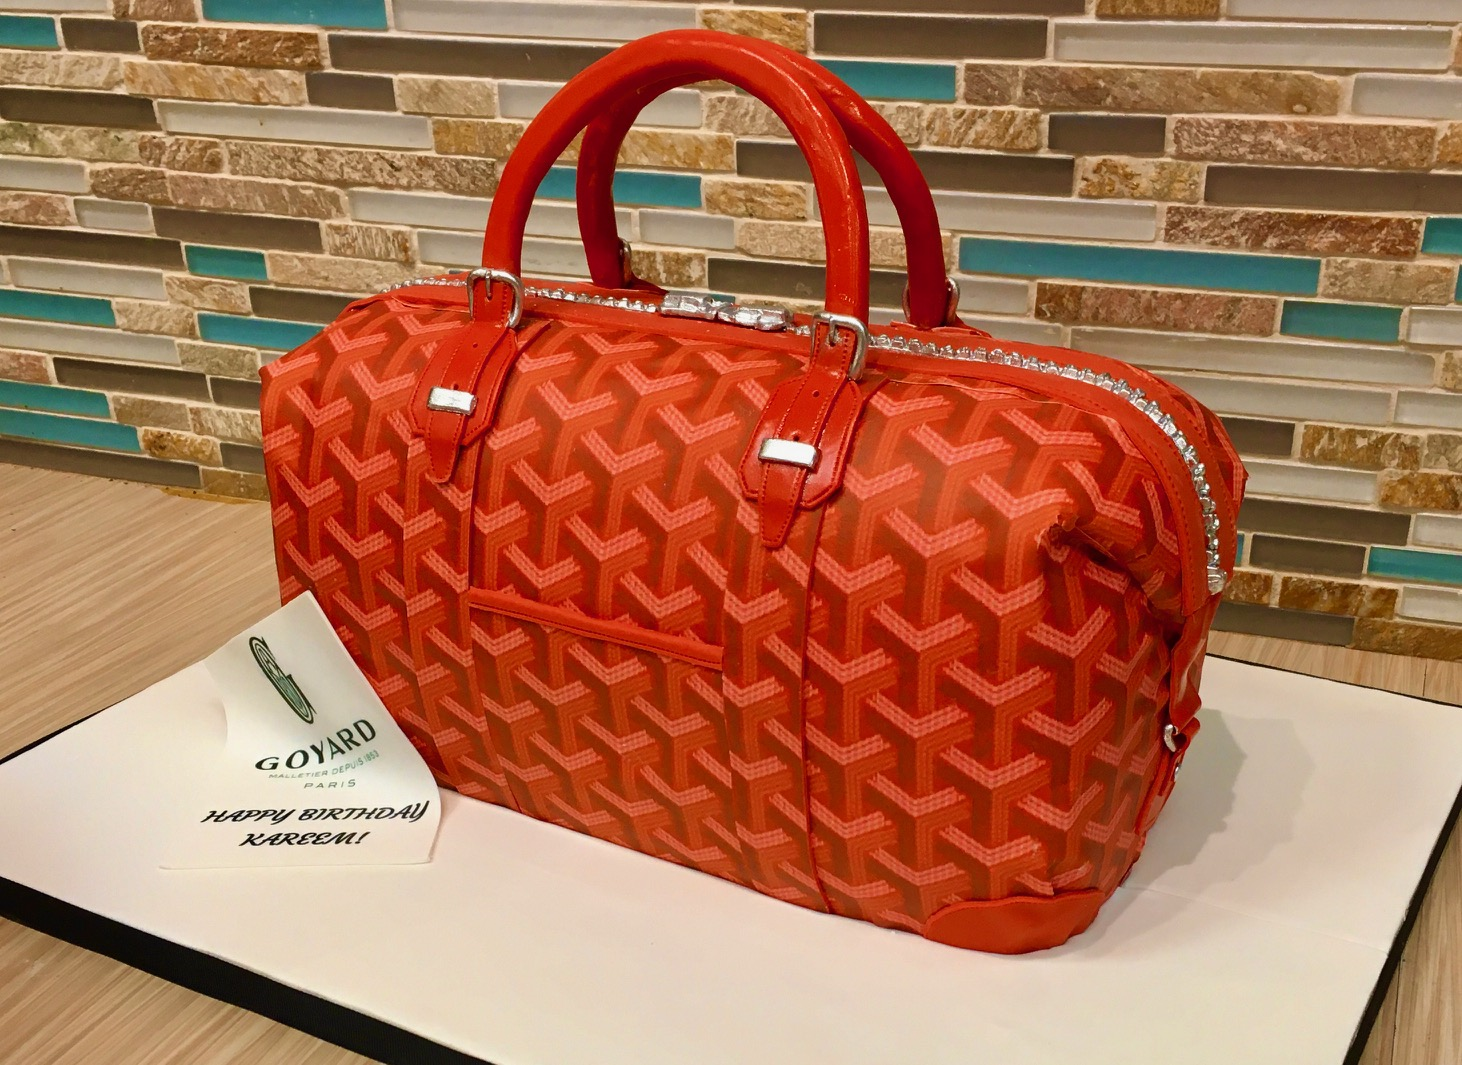 Goyard Duffel Bag Sculpted Cake